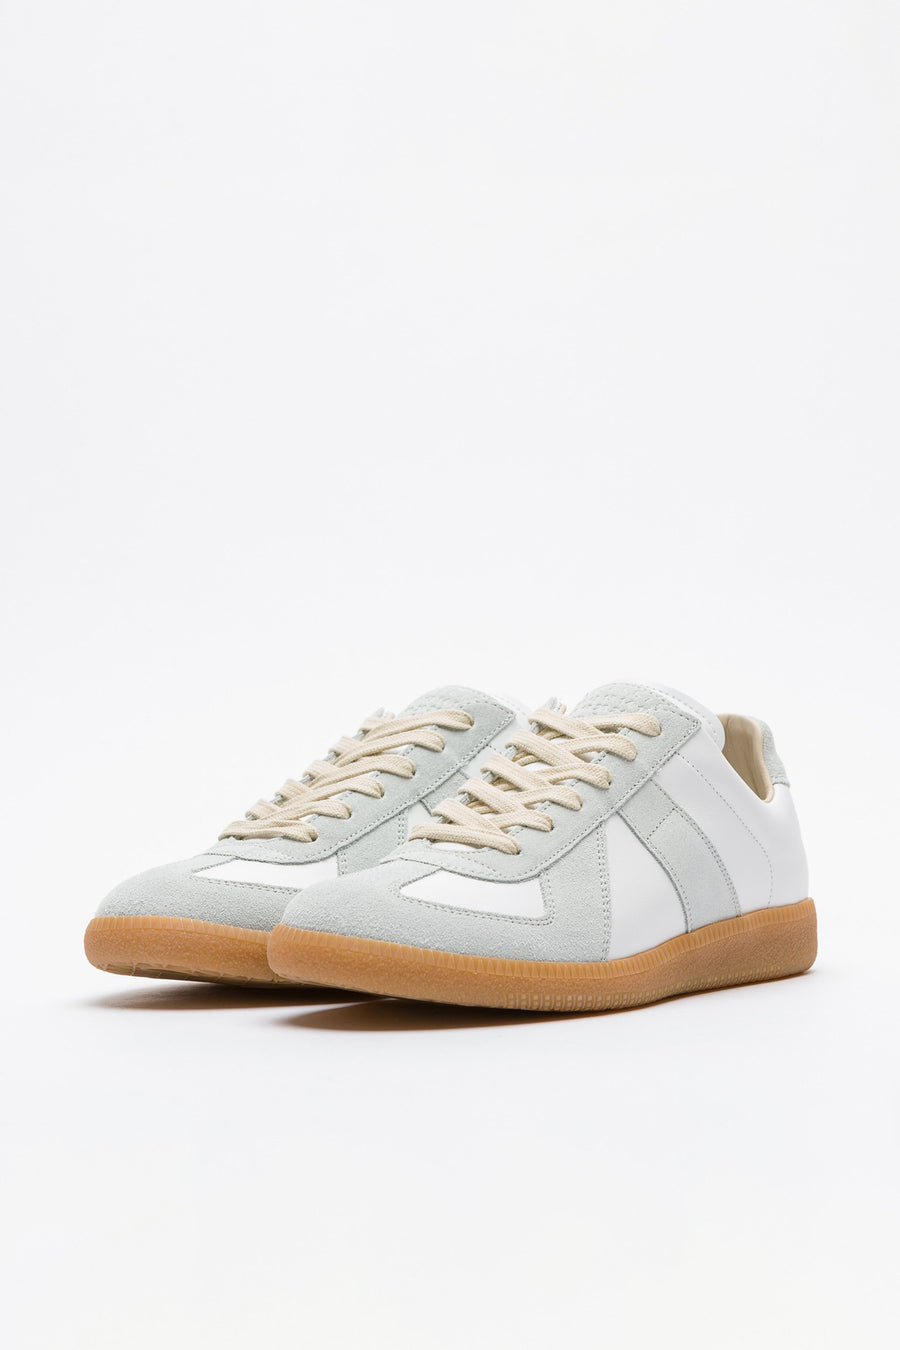 Maison Margiela Replica Sneaker in Grey/White/Gum - Notre